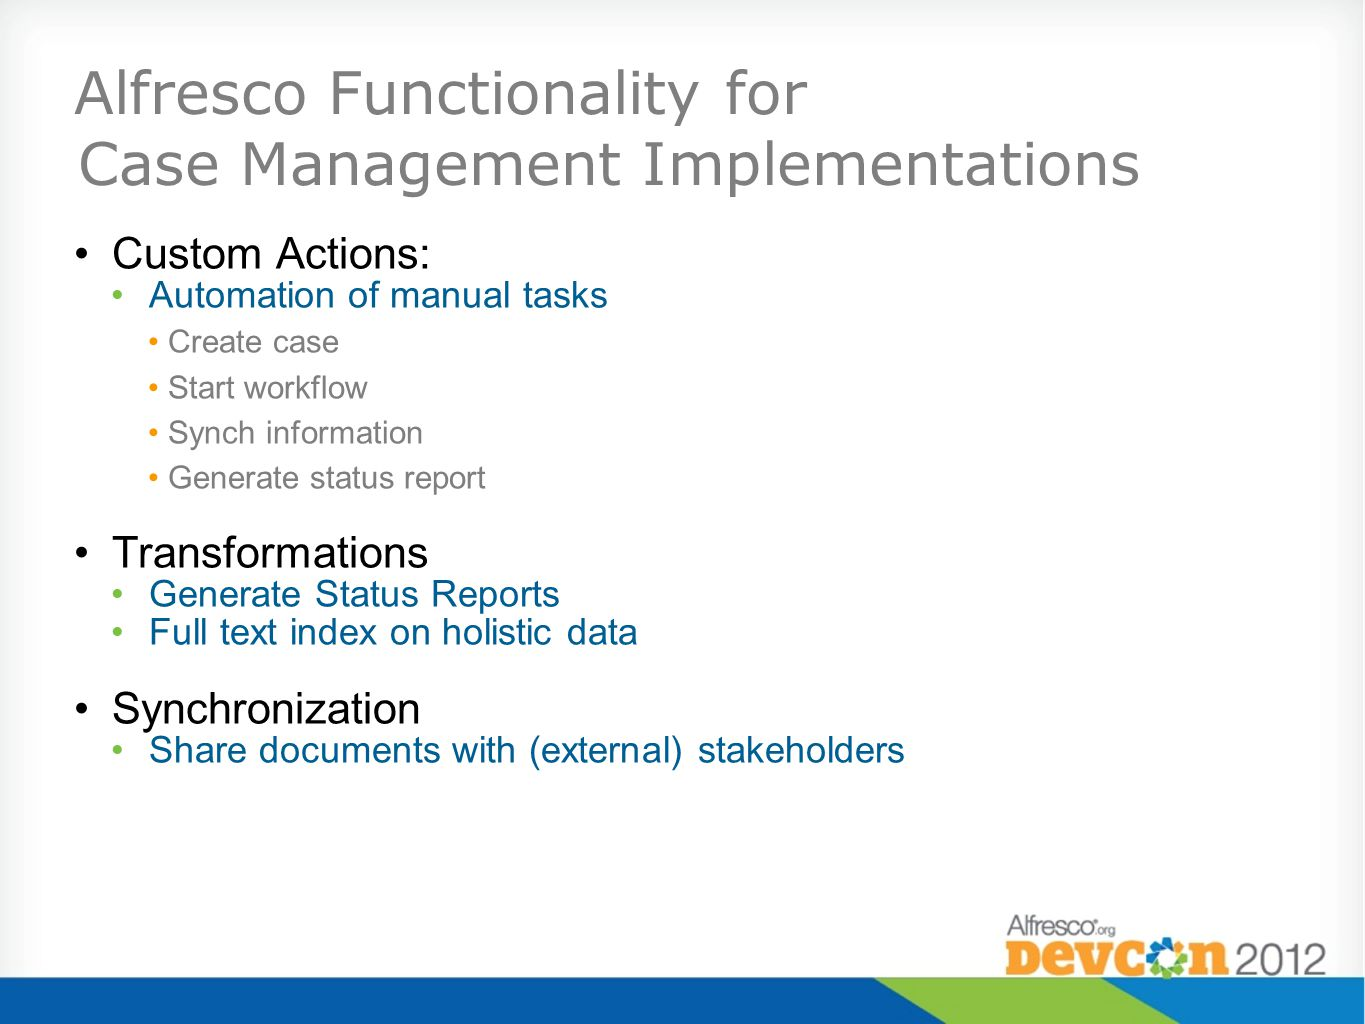 Alfresco Functionality for Case Management Implementations Custom Actions: Automation of manual tasks Create case Start workflow Synch information Generate status report Transformations Generate Status Reports Full text index on holistic data Synchronization Share documents with (external) stakeholders